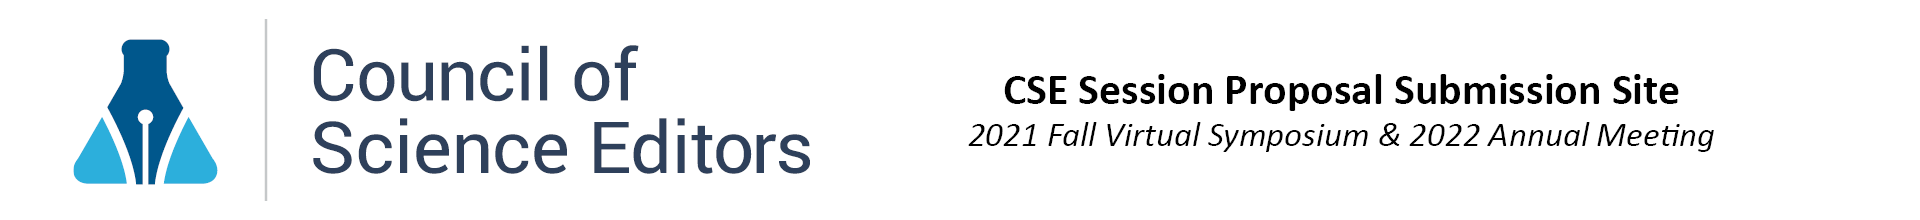 CSE 2021 Fall Symposium & 2022 Annual Meeting Proposals Event Banner